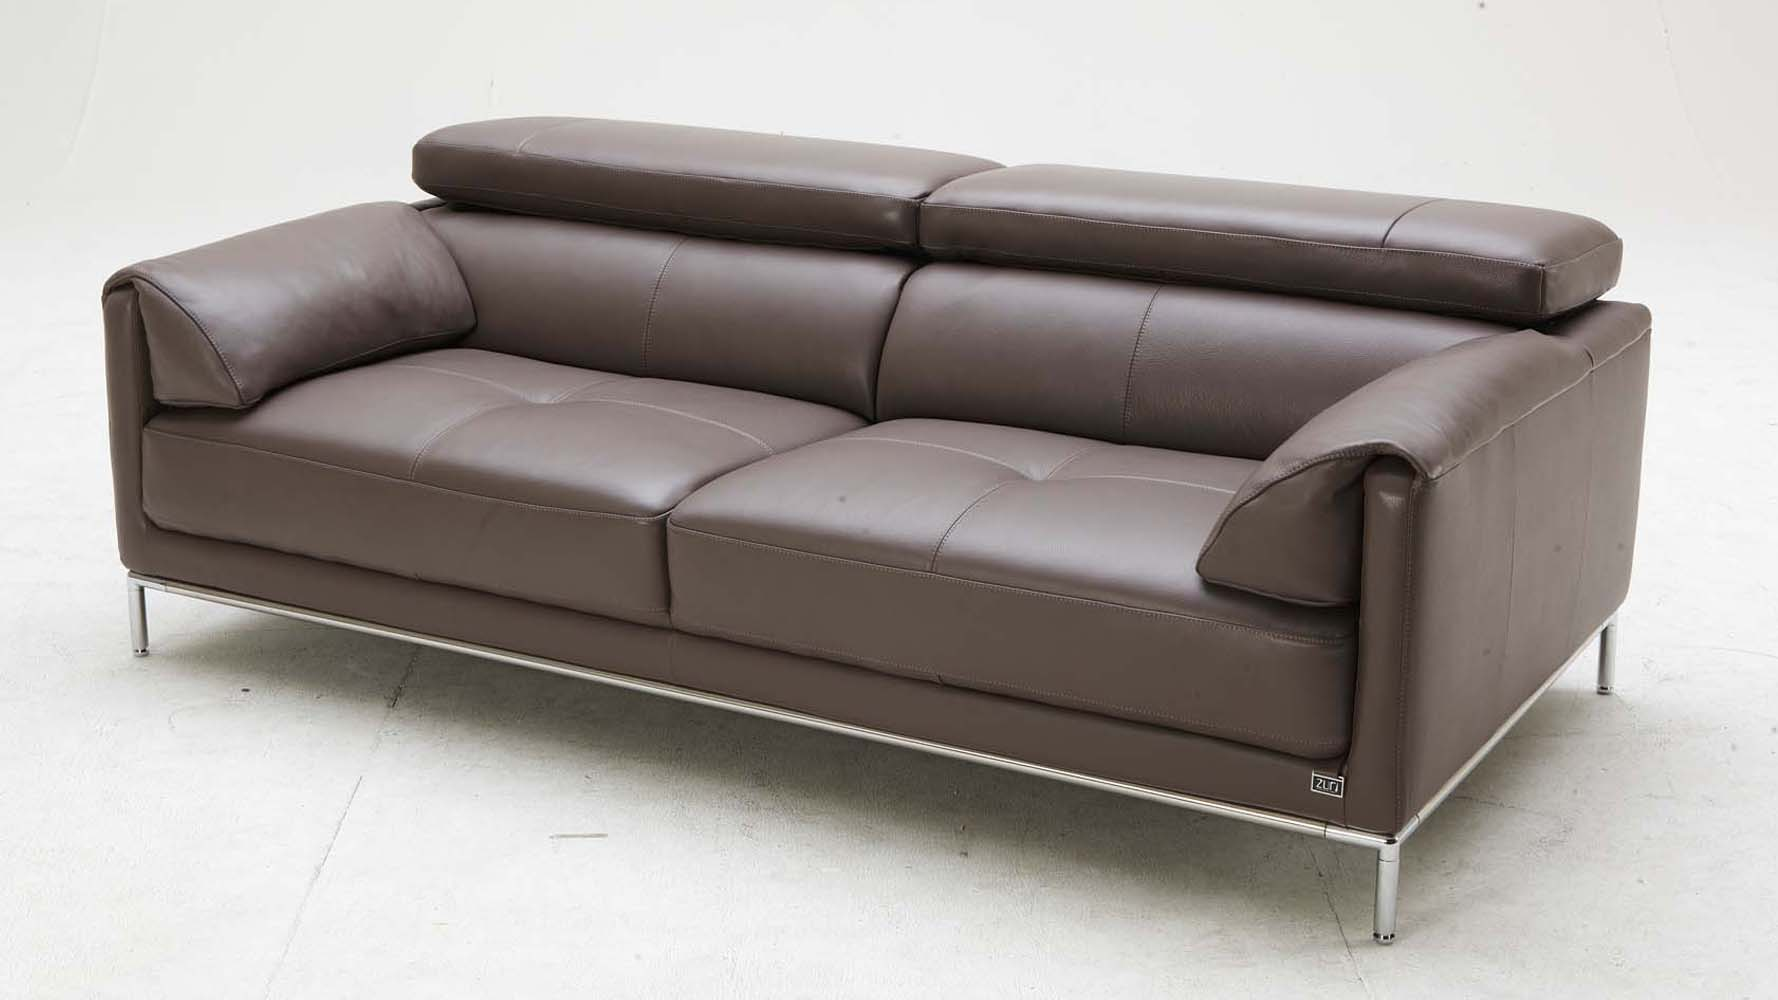 sam and cat sofa bed trick low profile eaton energywarden